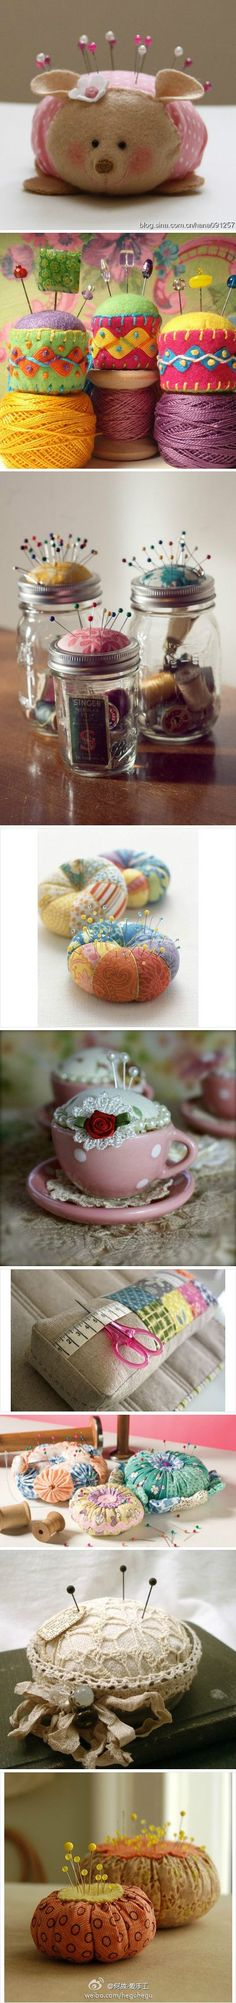 DIY pincushions | DIY real